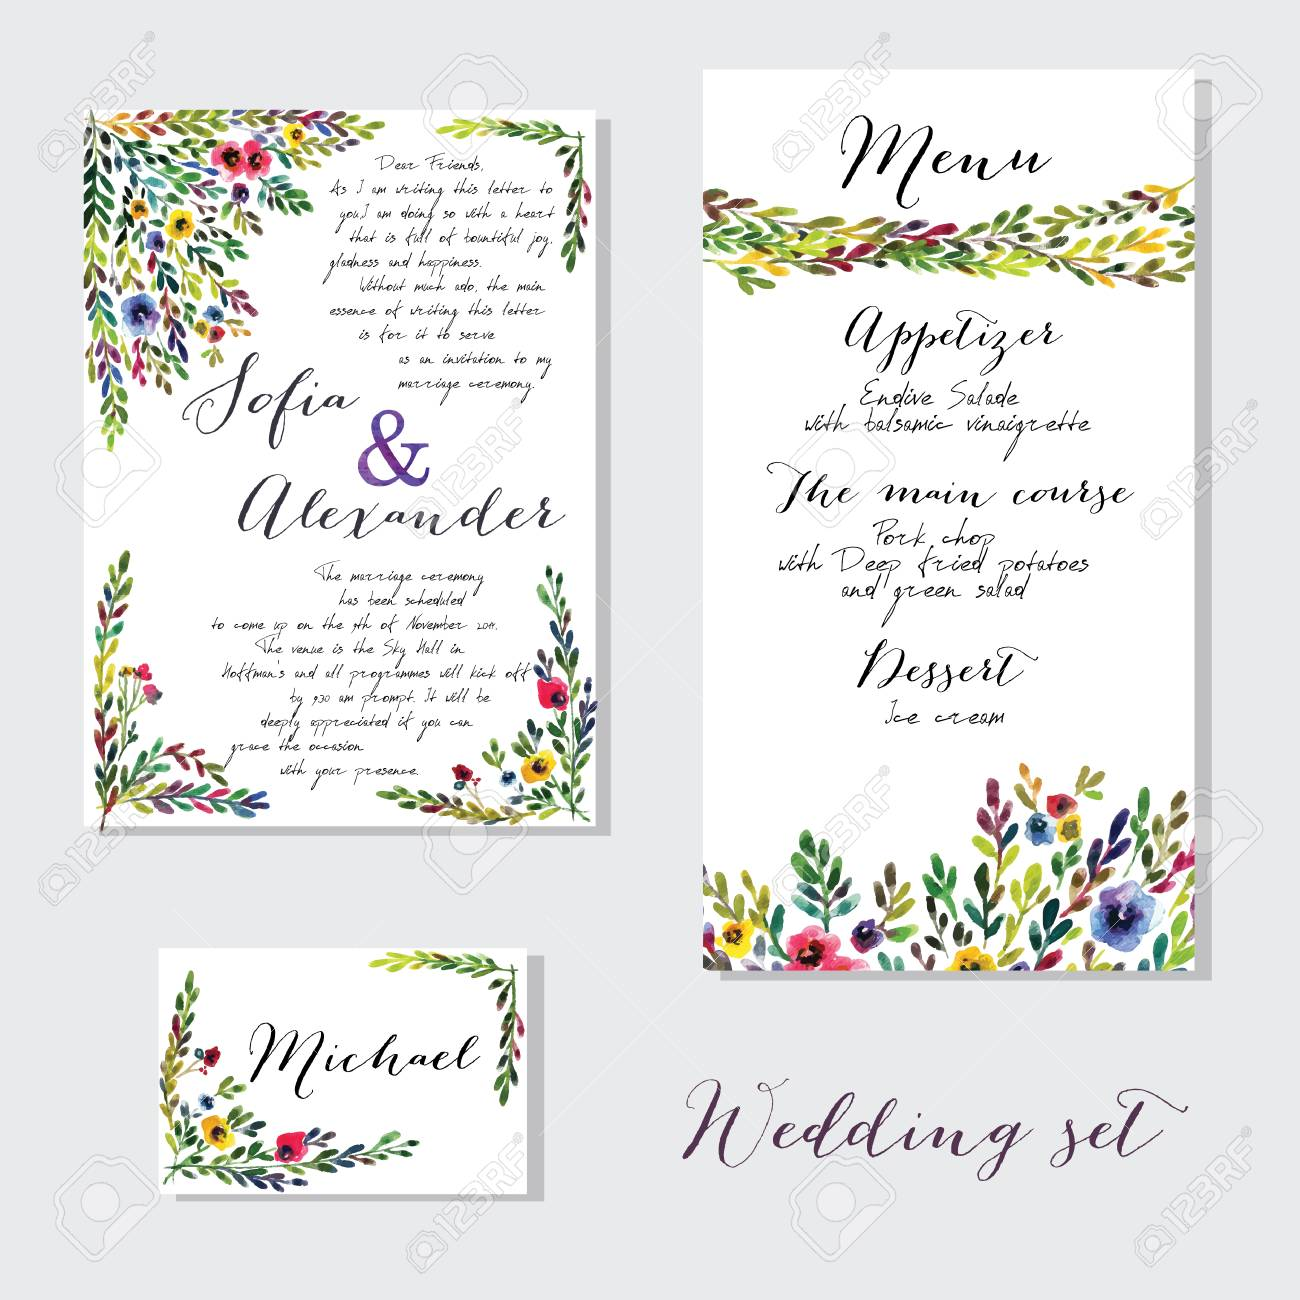 Vector Set Of Invitation Cards With Watercolor Flowers Elements ...